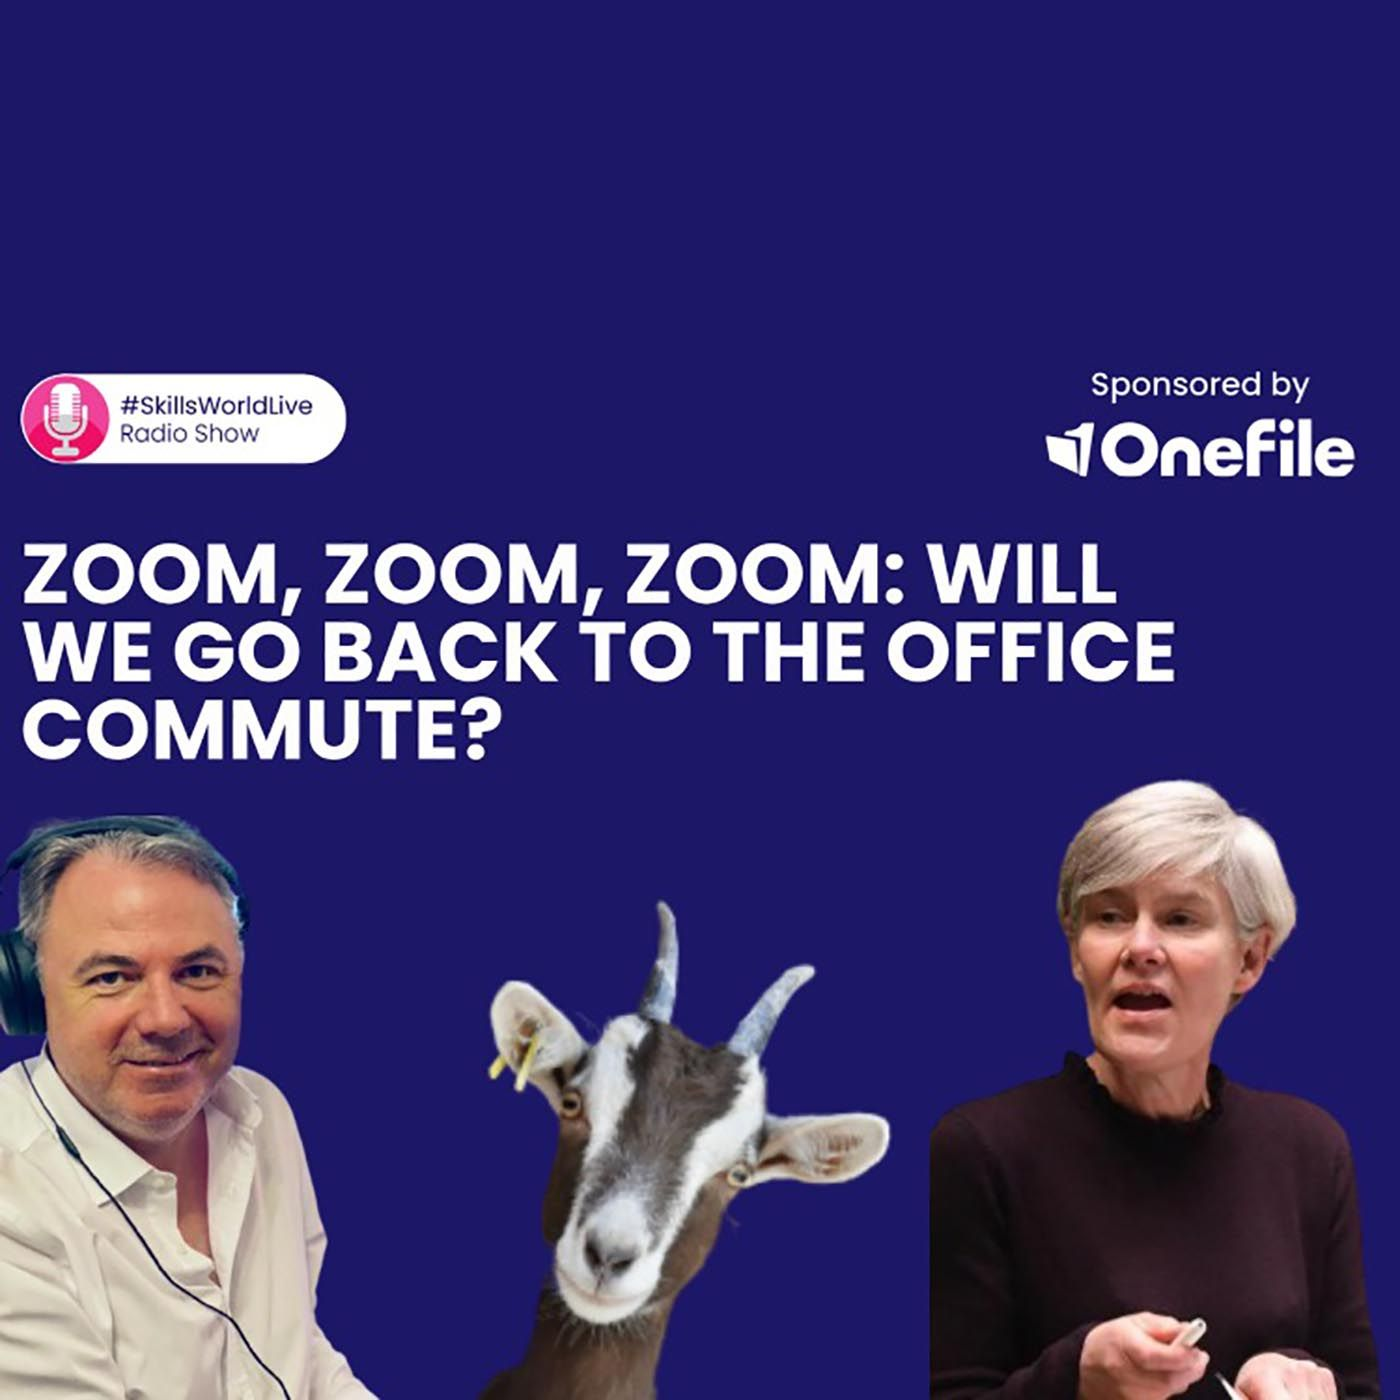 Zoom, Zoom, Zoom: Will we go back to the office commute? #SkillsWorldLive 3.3